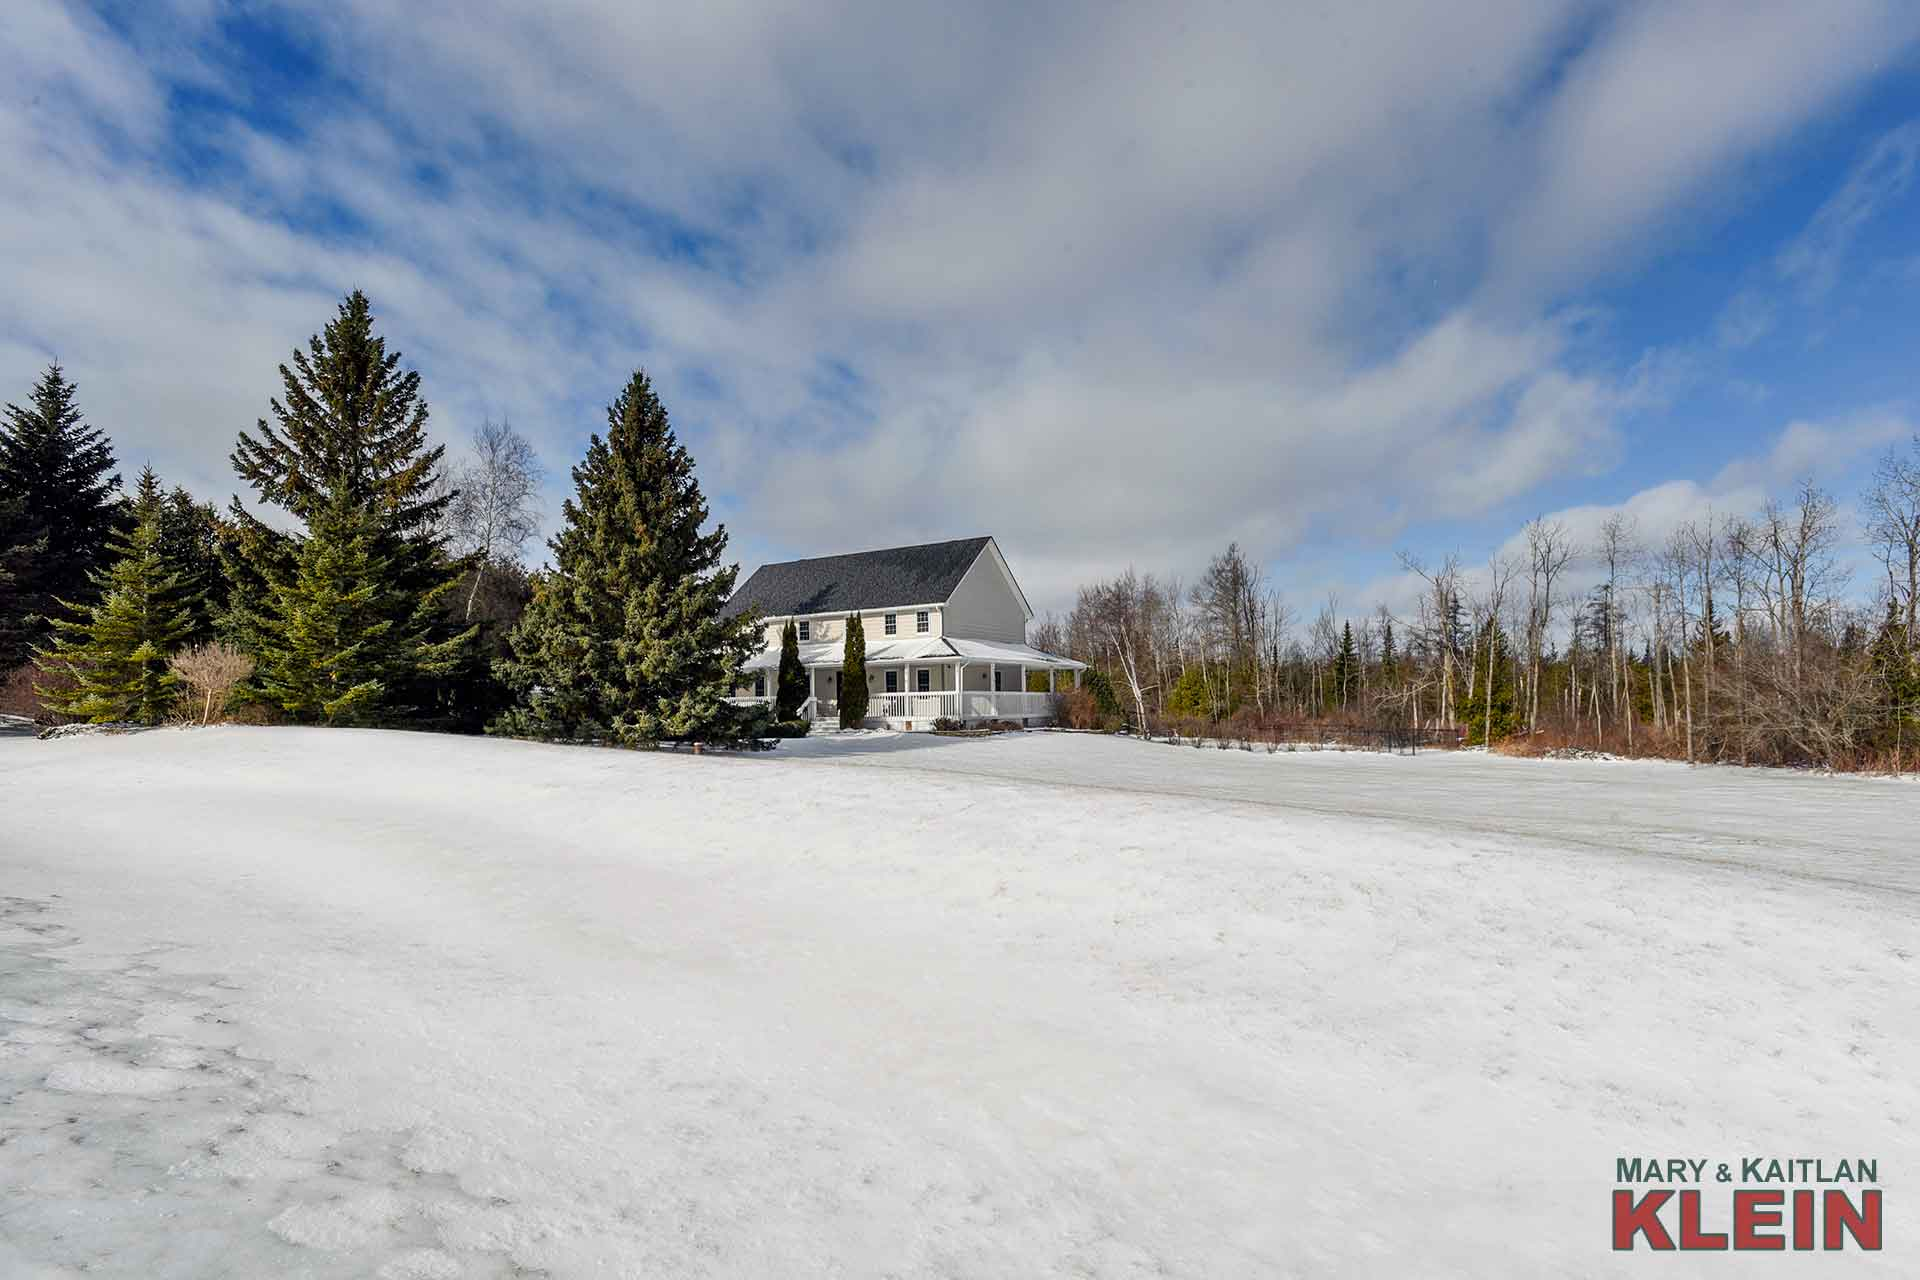 Home for sale, country crescent, mcconachie drive, caledon, ontario, near orangeville, klein